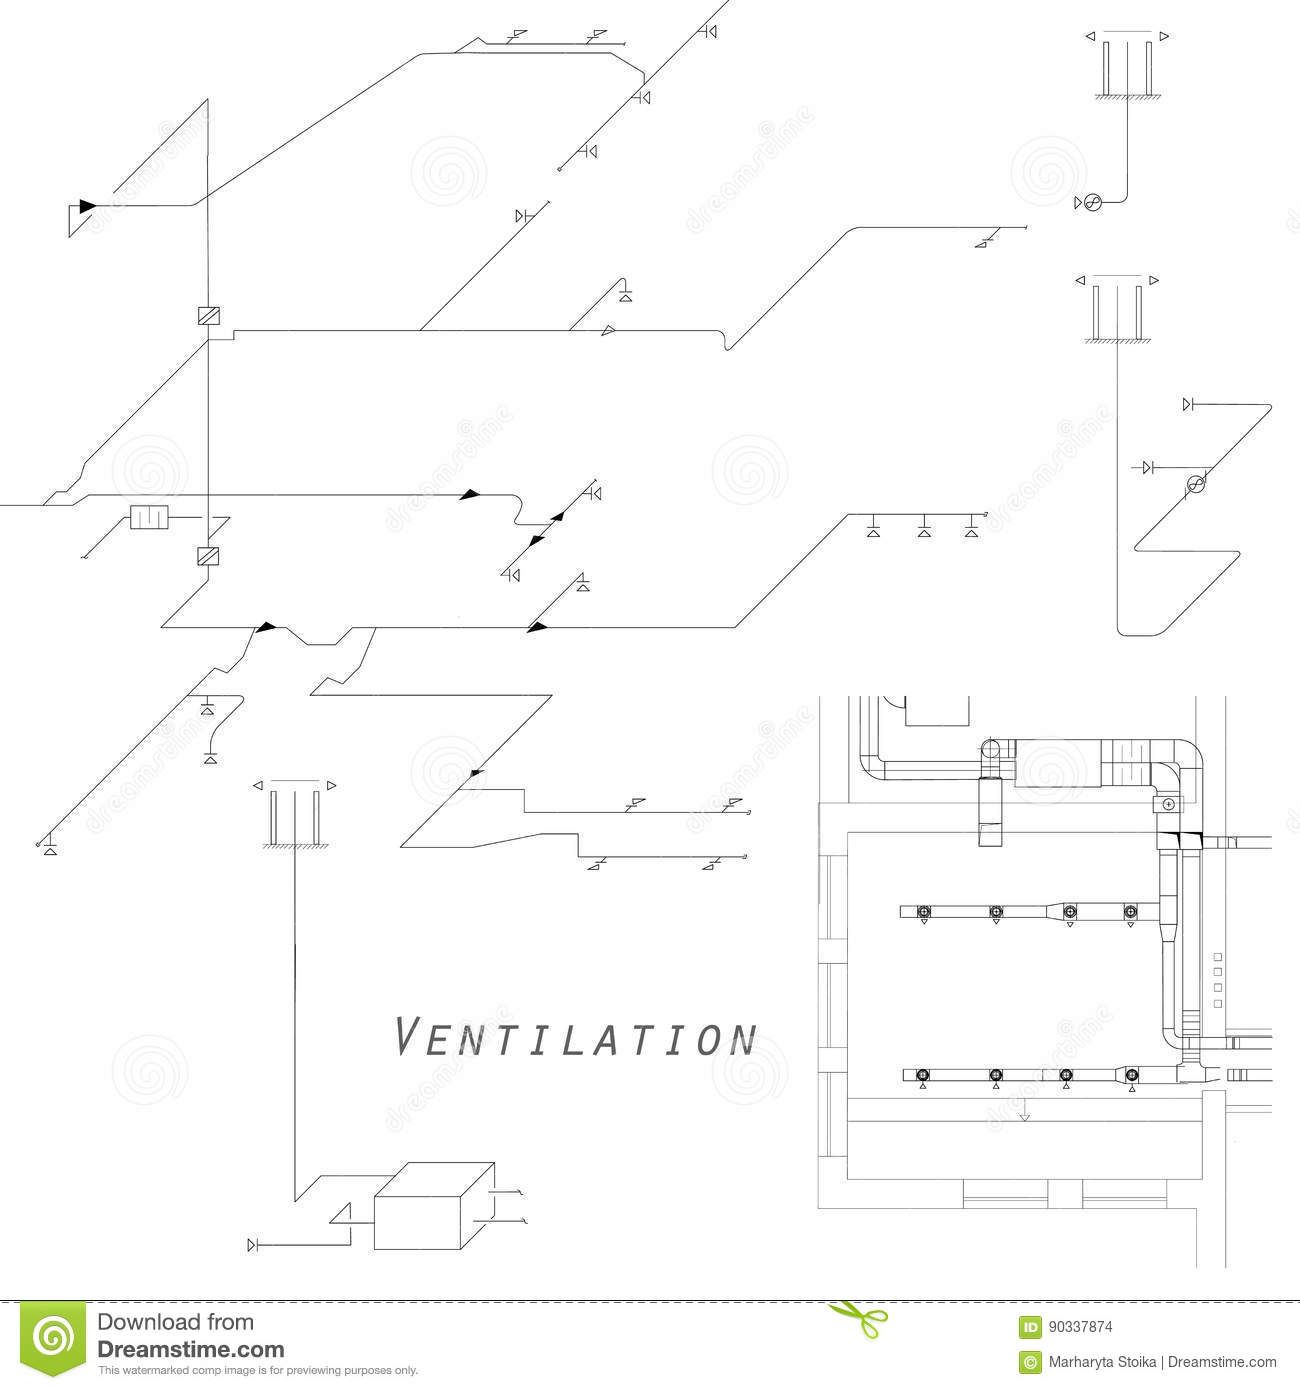 hight resolution of hvac isometric drawing wiring libraryaxonometric view of the ventilation system vector design for hvac the ducts